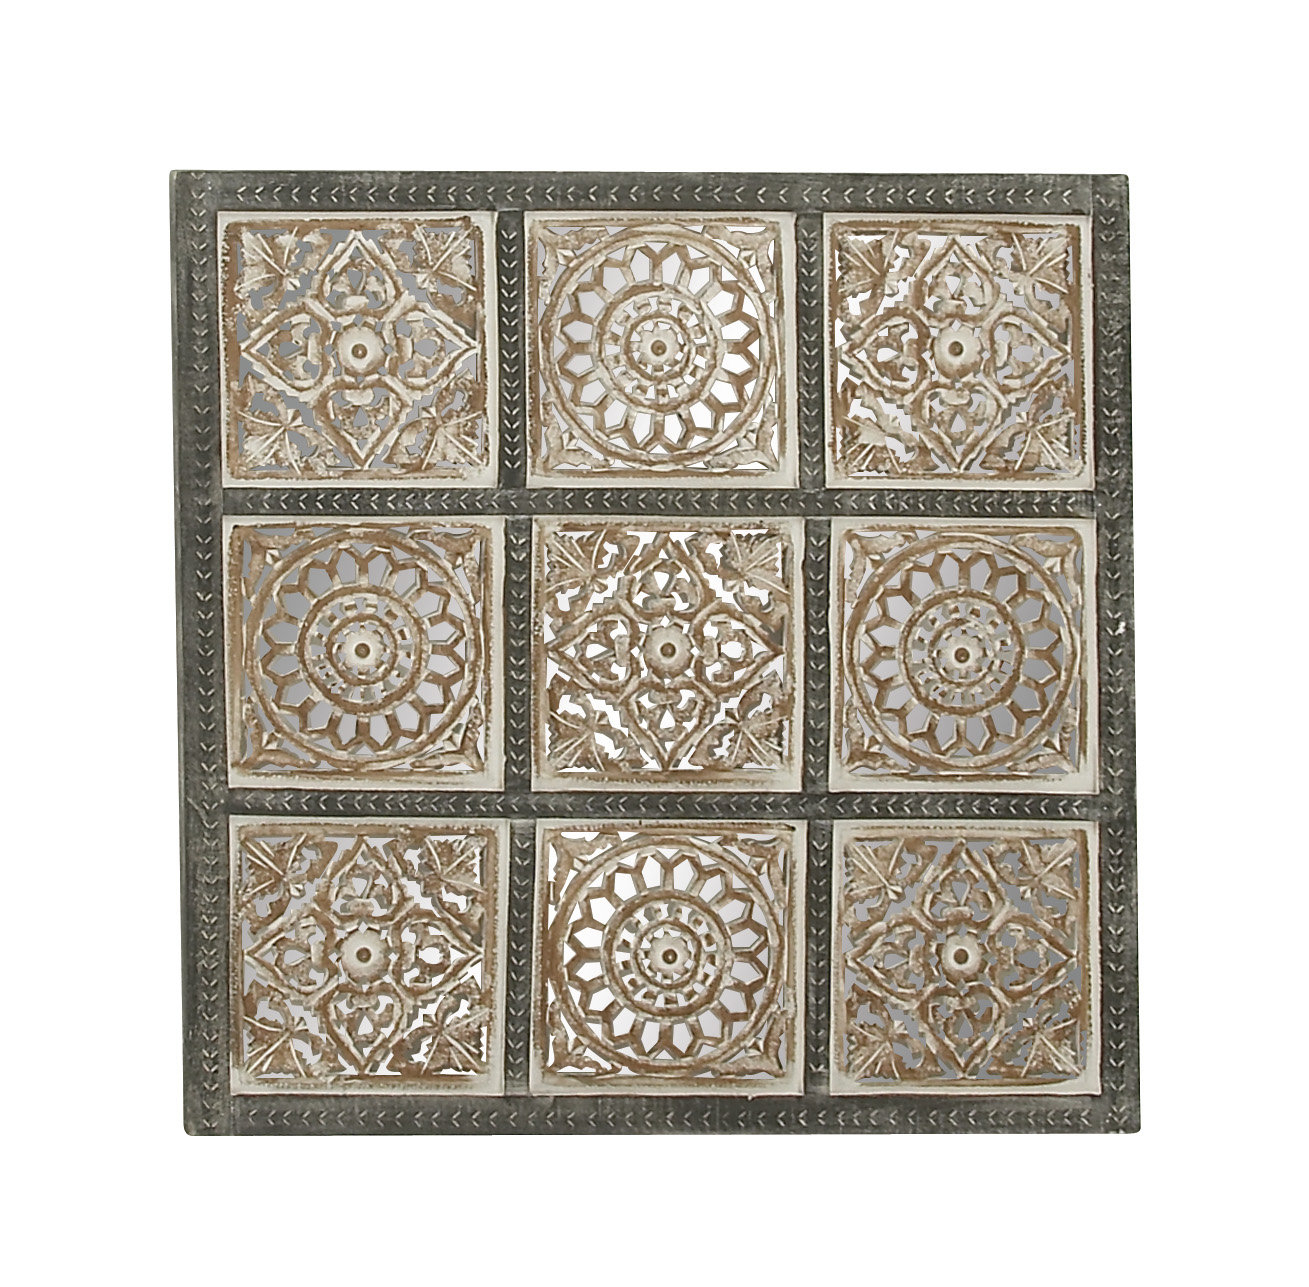 Creatively Designed Panel Wall Décor Pertaining To 1 Piece Ortie Panel Wall Decor (View 12 of 30)